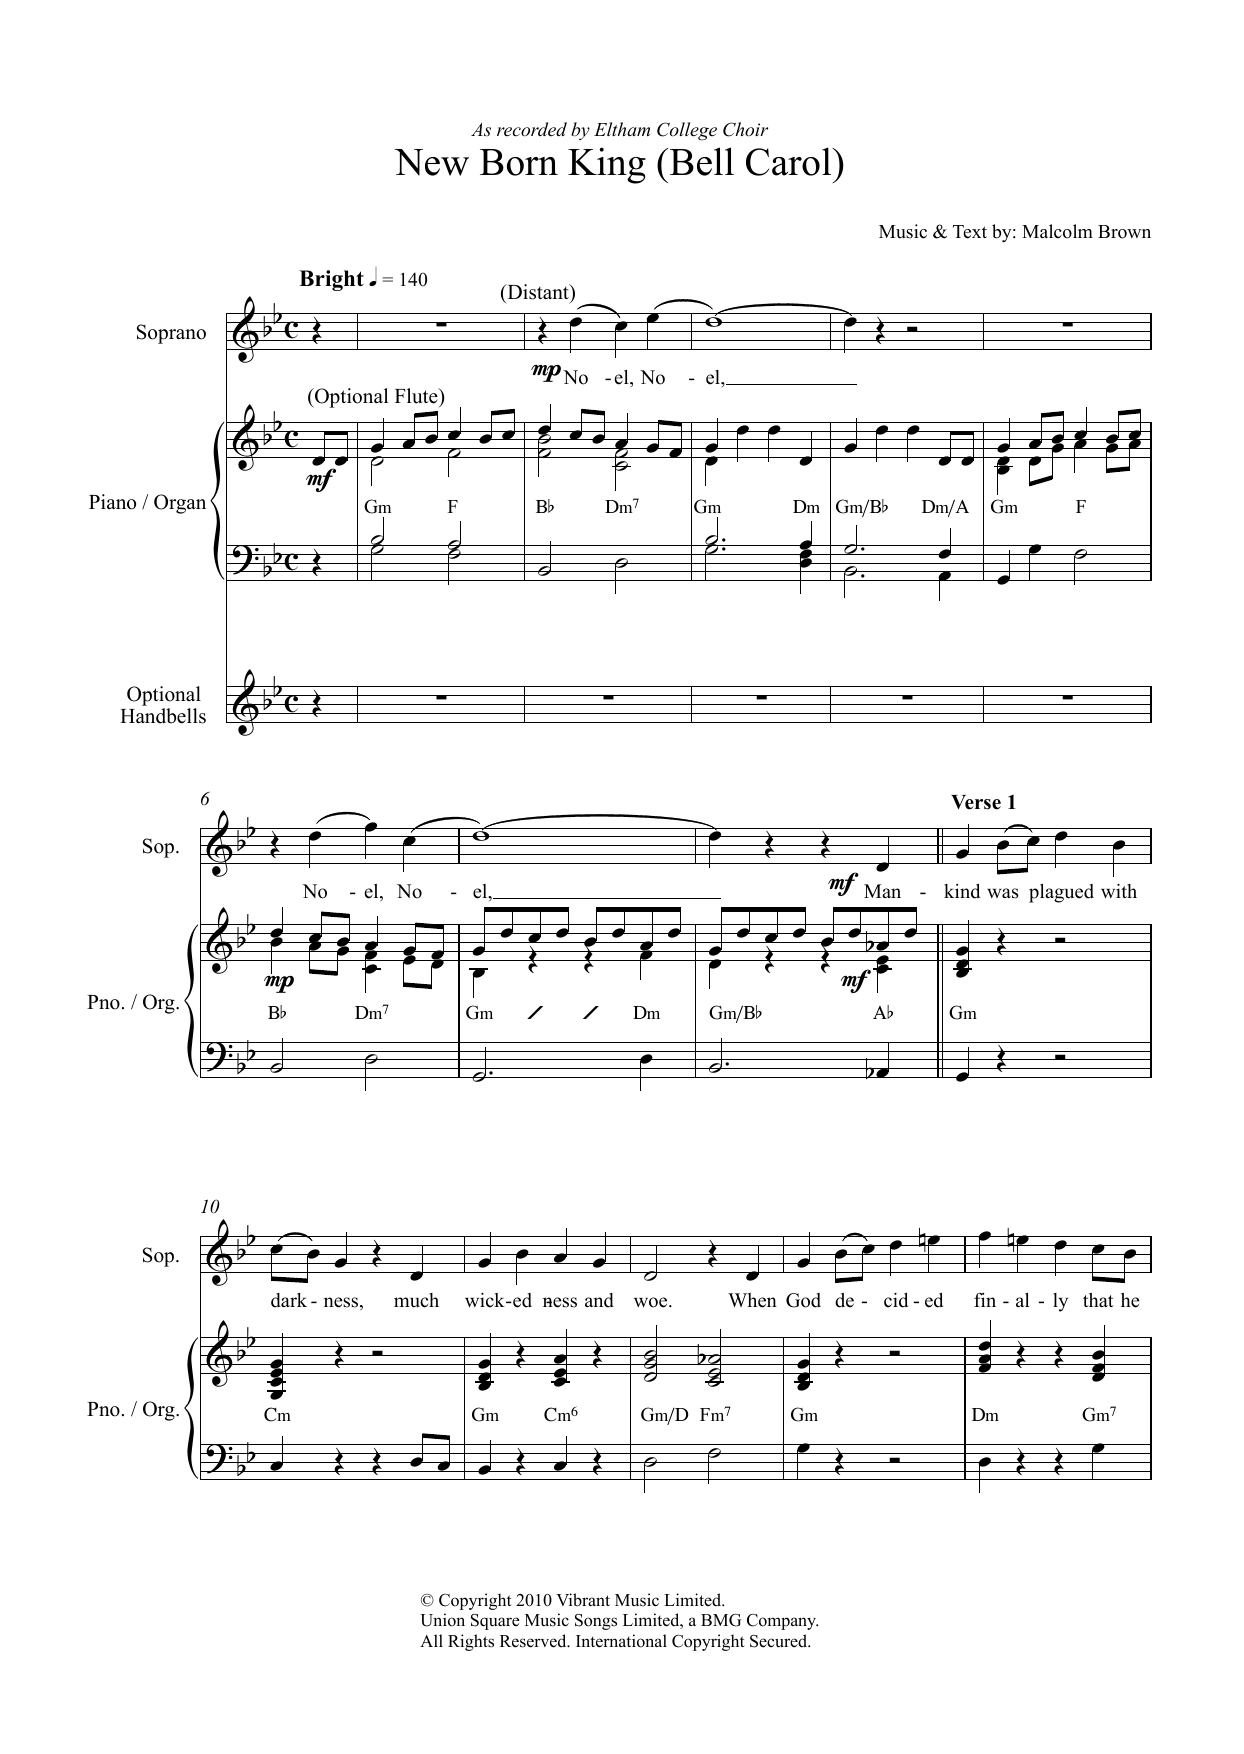 New Born King (Bell Carol) Sheet Music